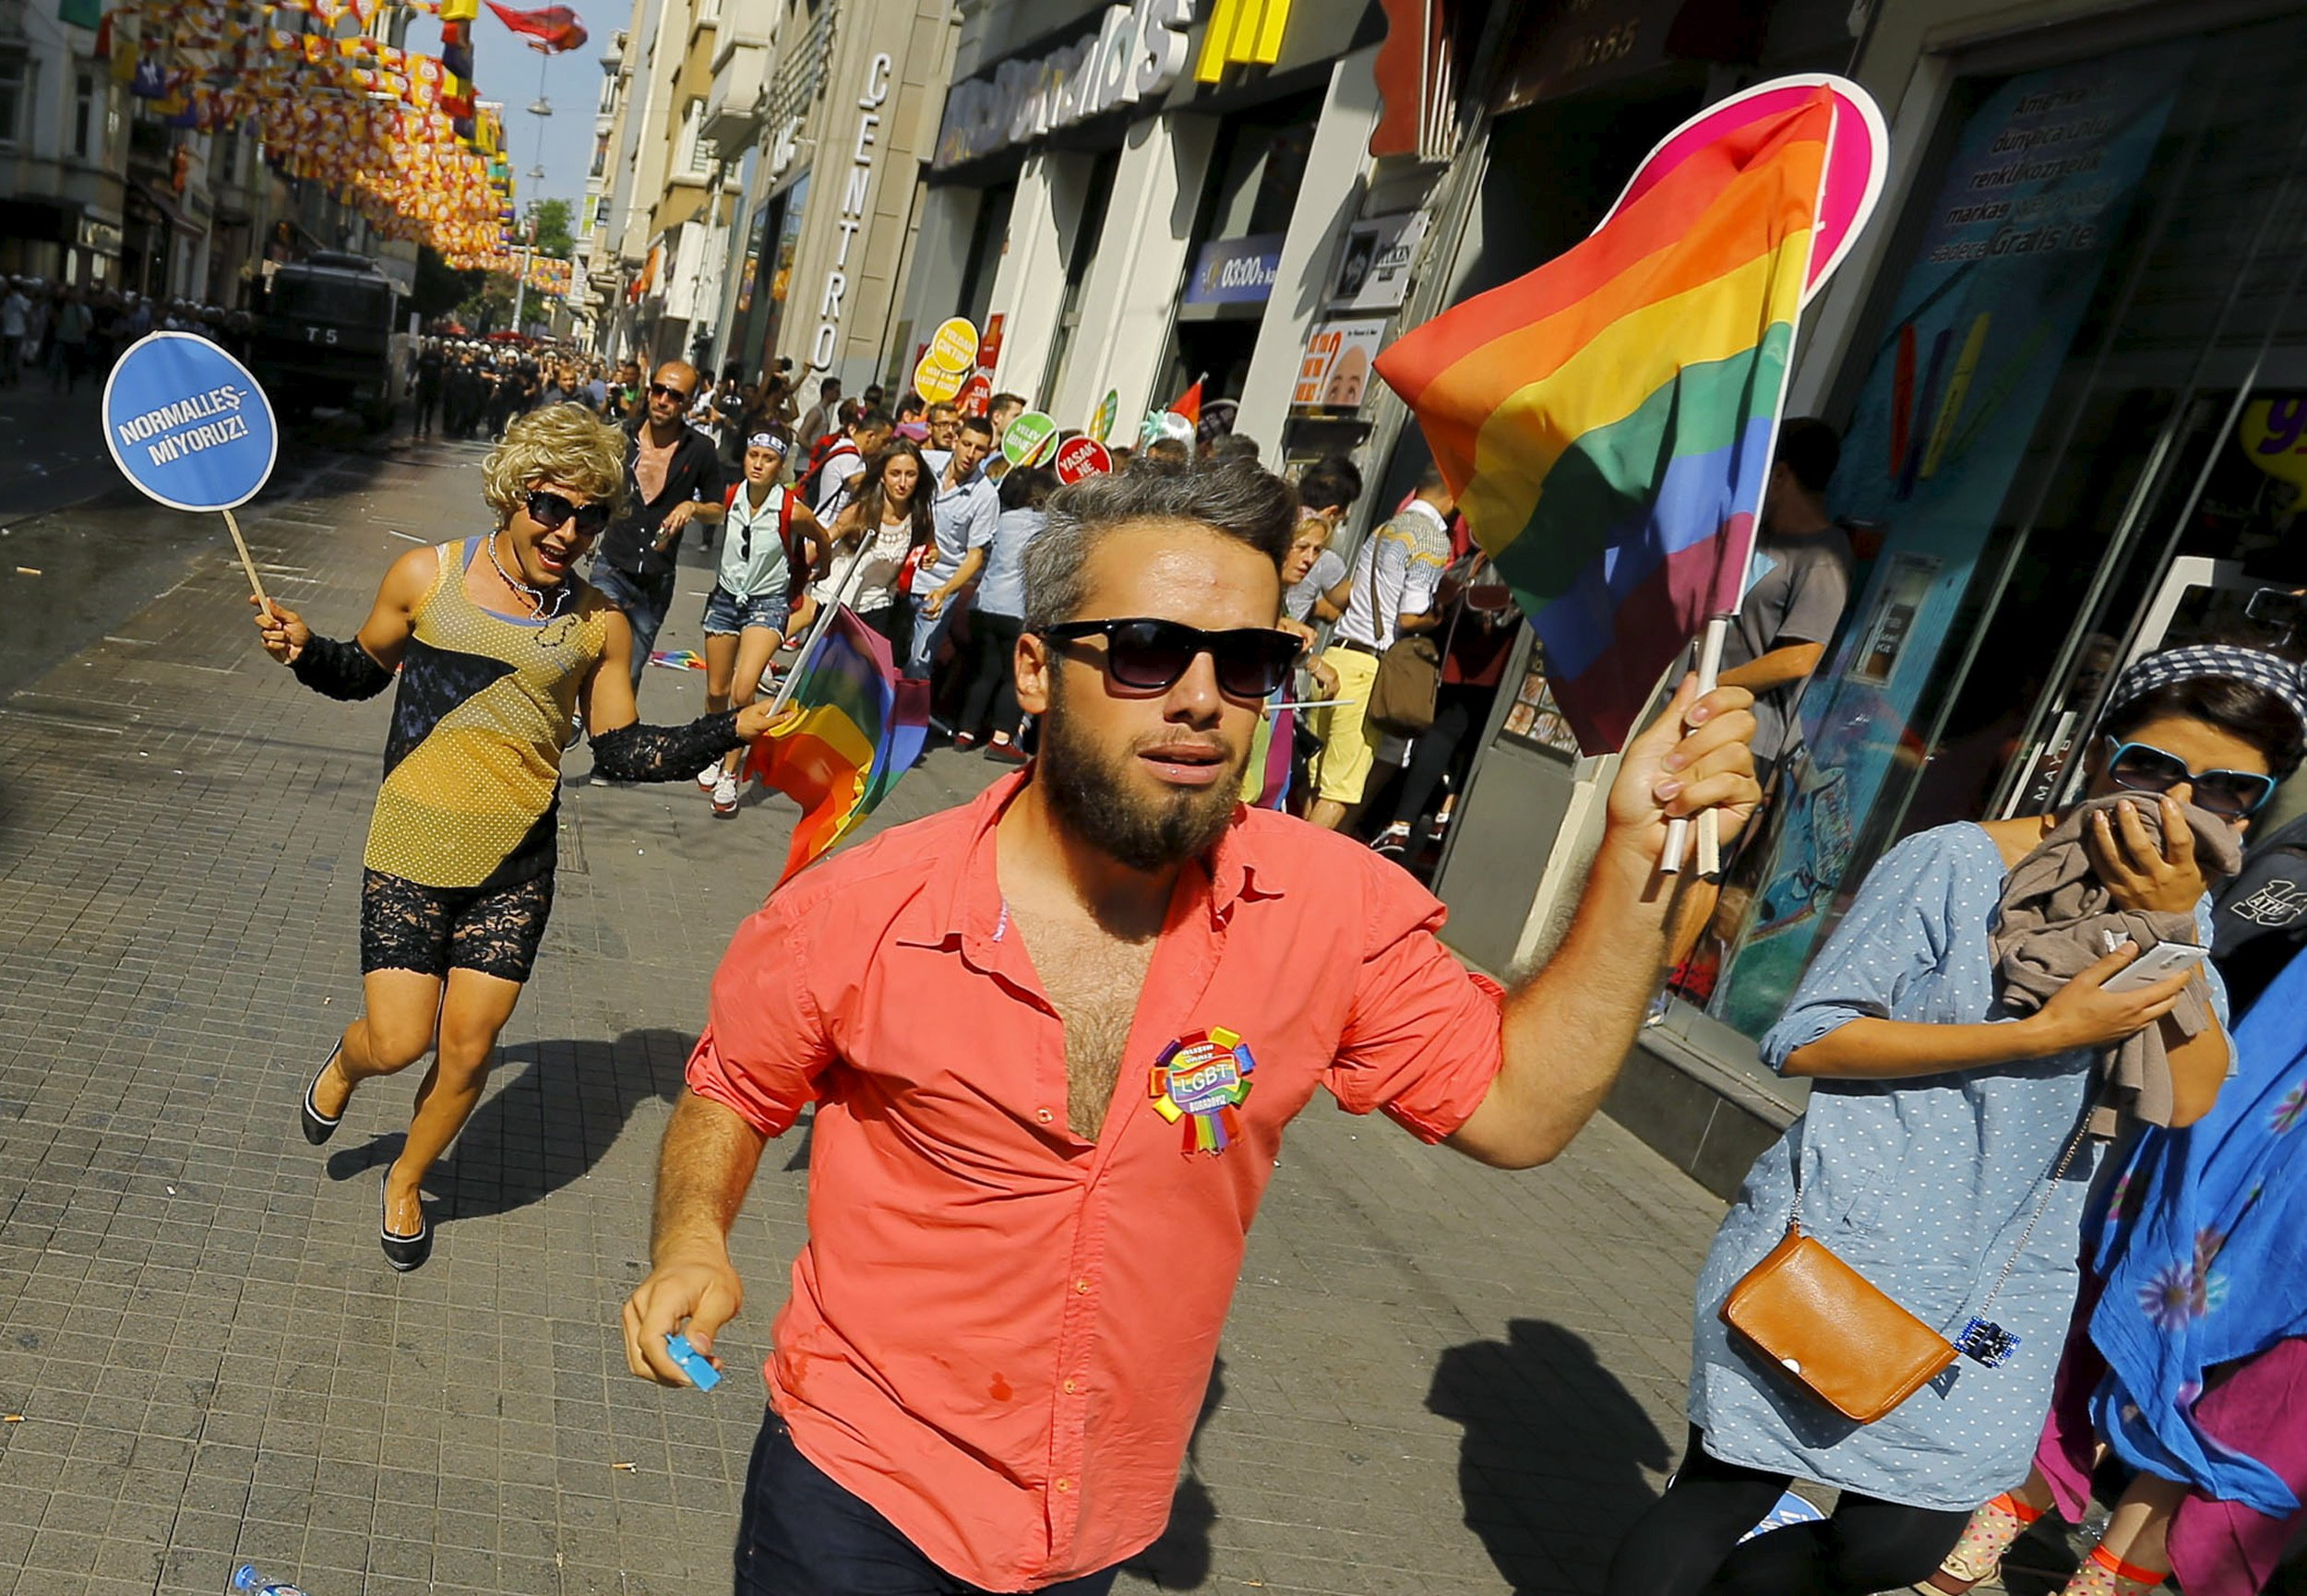 Turkish LGBT pride protesters